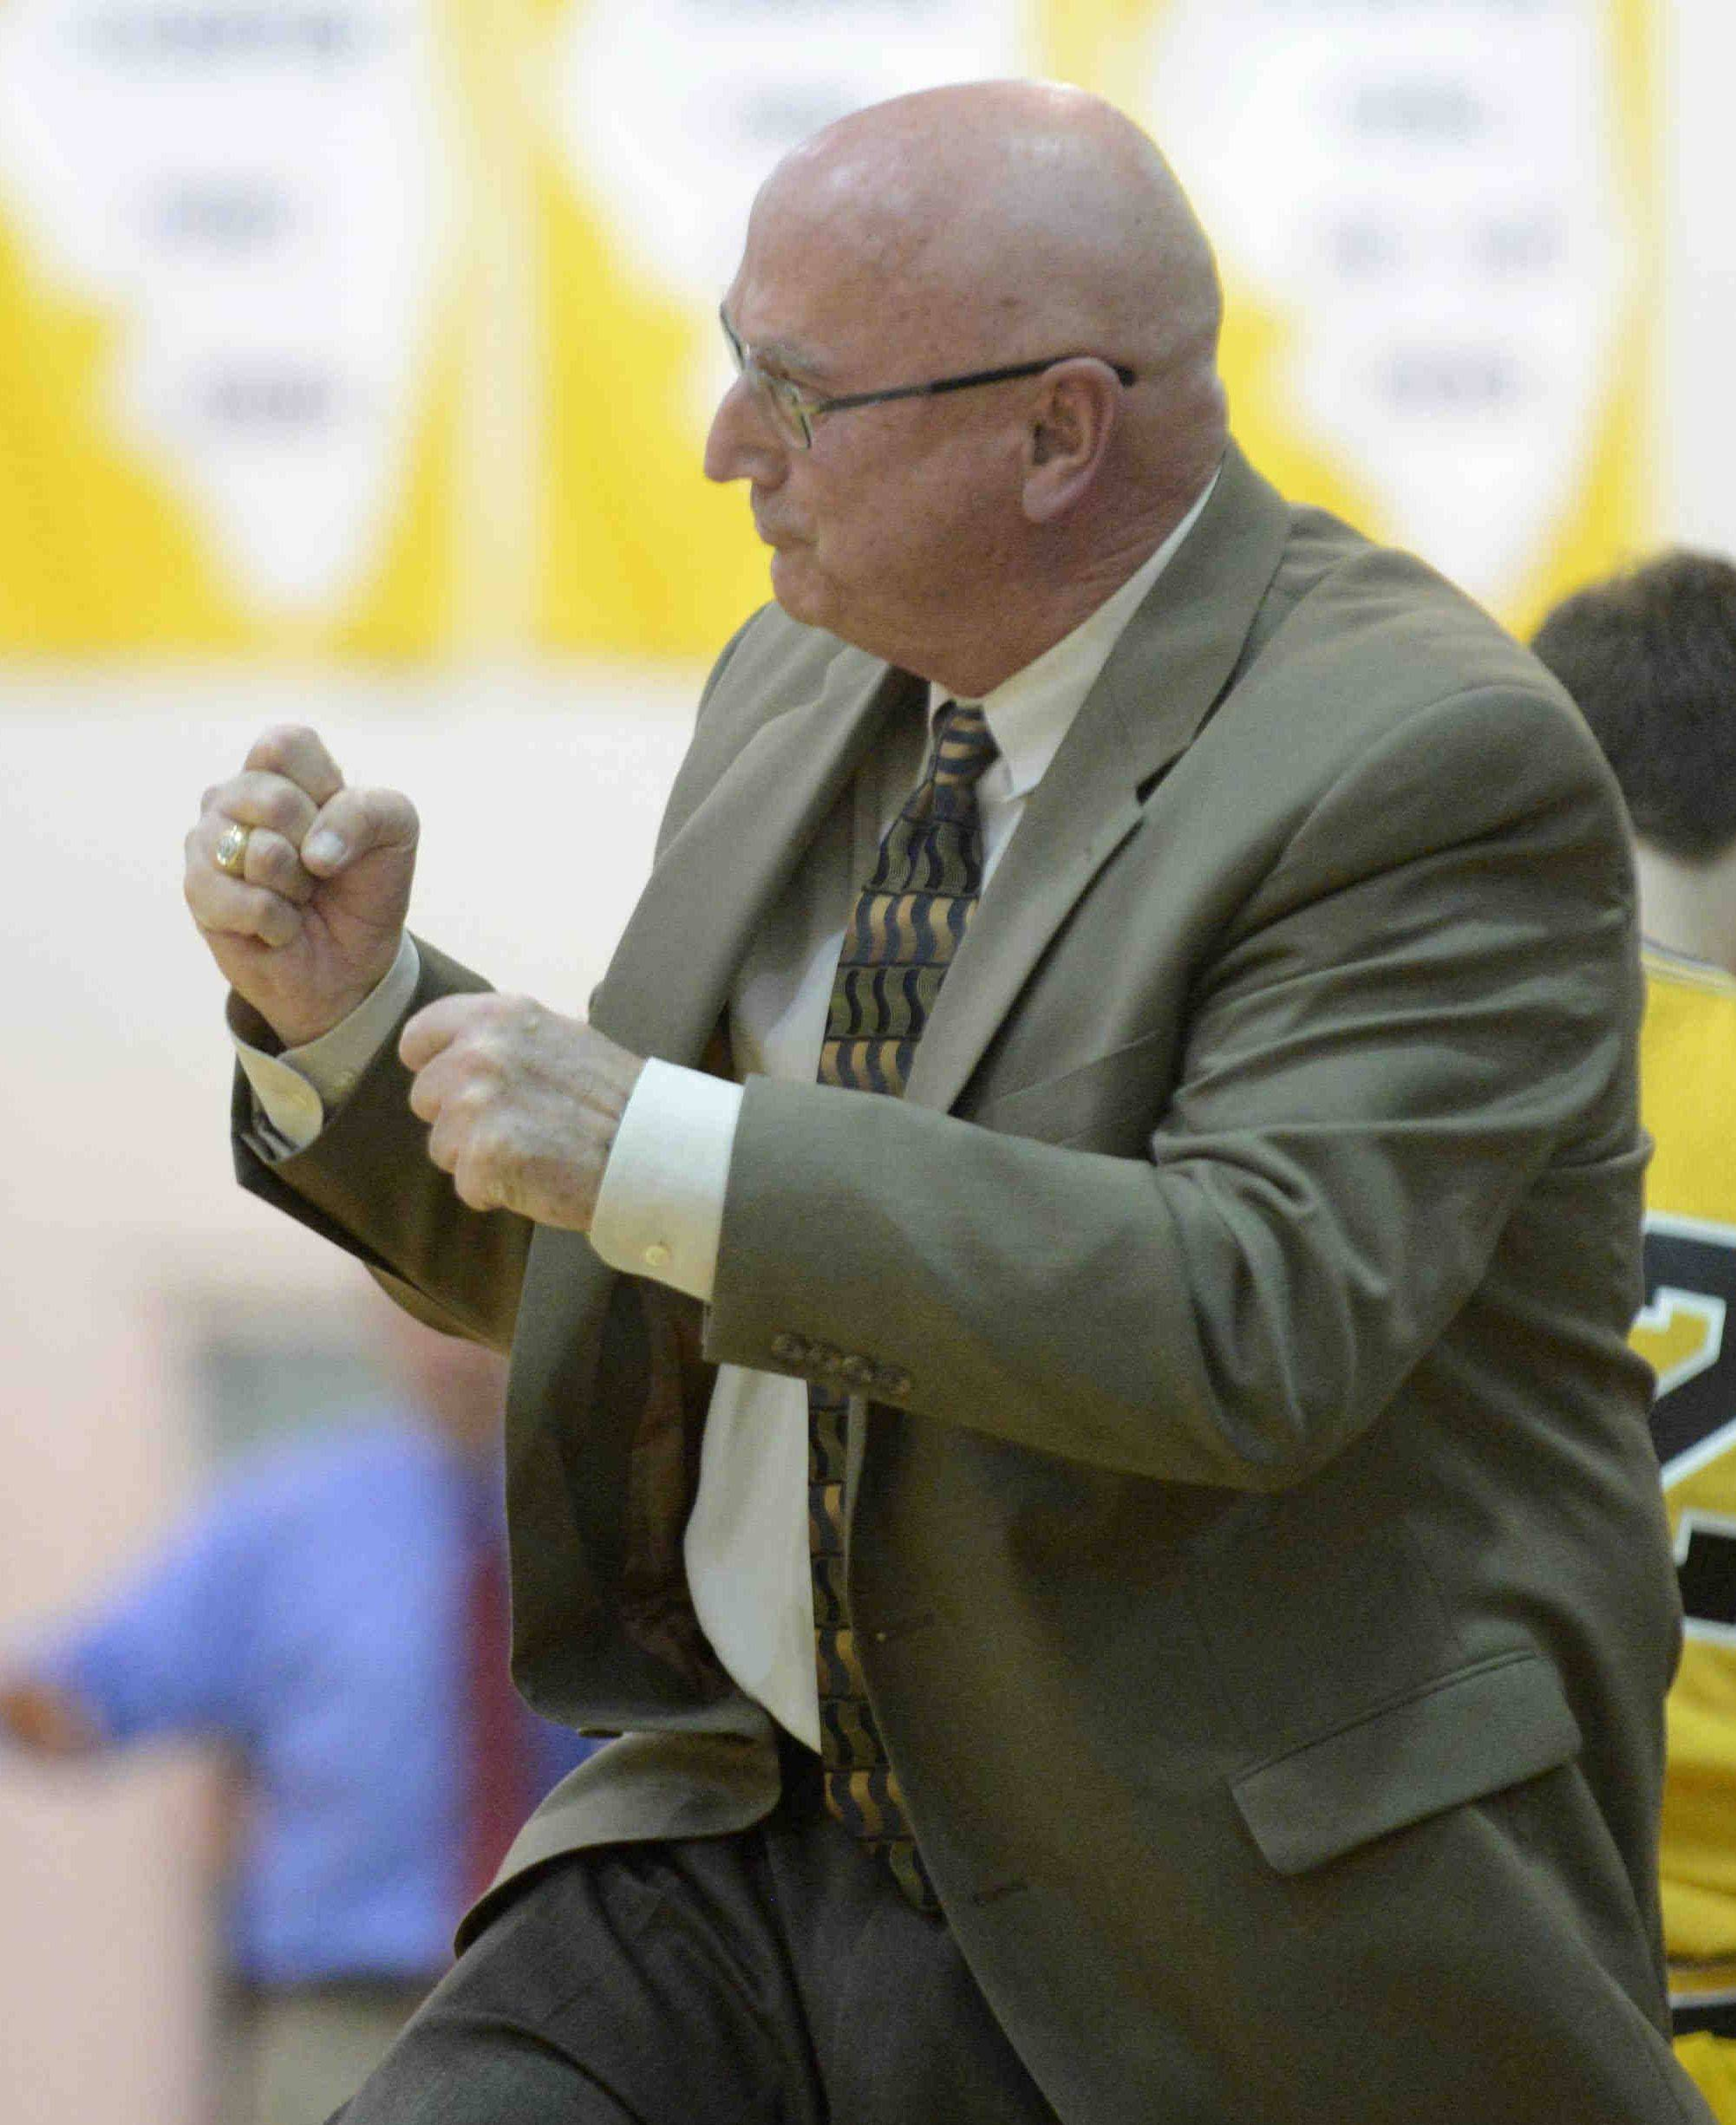 Jacobs coach Jim Hinkle reacts near the end of the game against Dundee-Crown in the Class 4A Jacobs regional Wednesday.